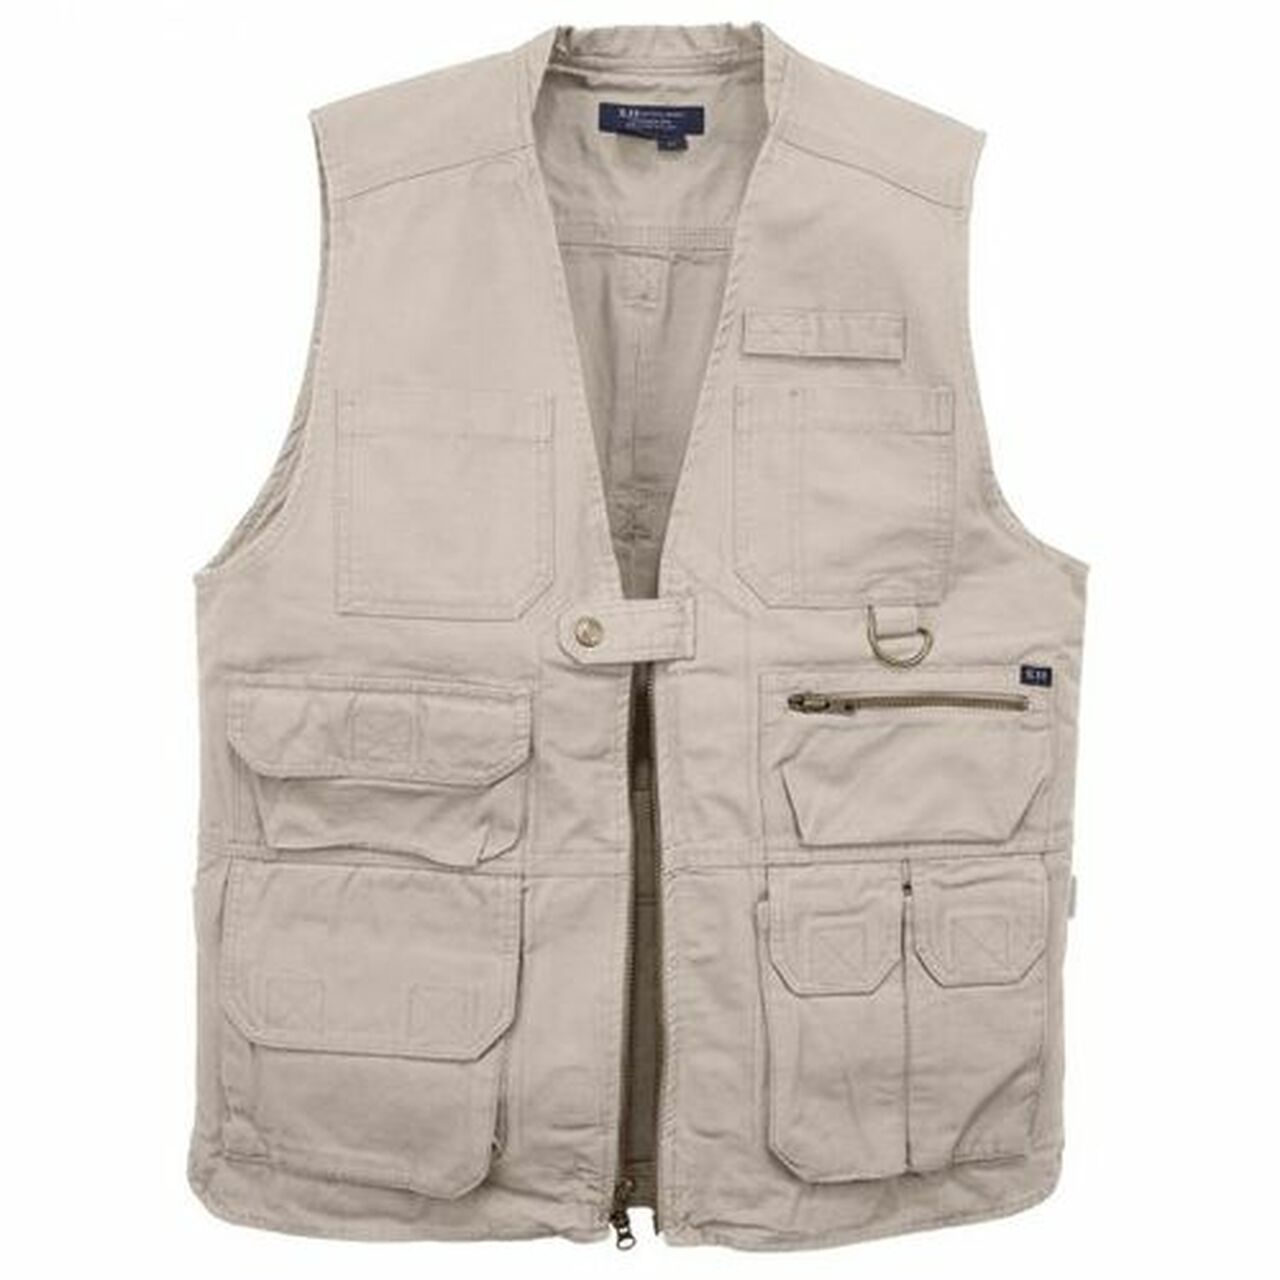 5.11 Tactical Vest, Seventeen Pockets, Twin Rear Hydration Pockets, 100% Cotton Canvas Fabric, available in Black or Khaki 80001